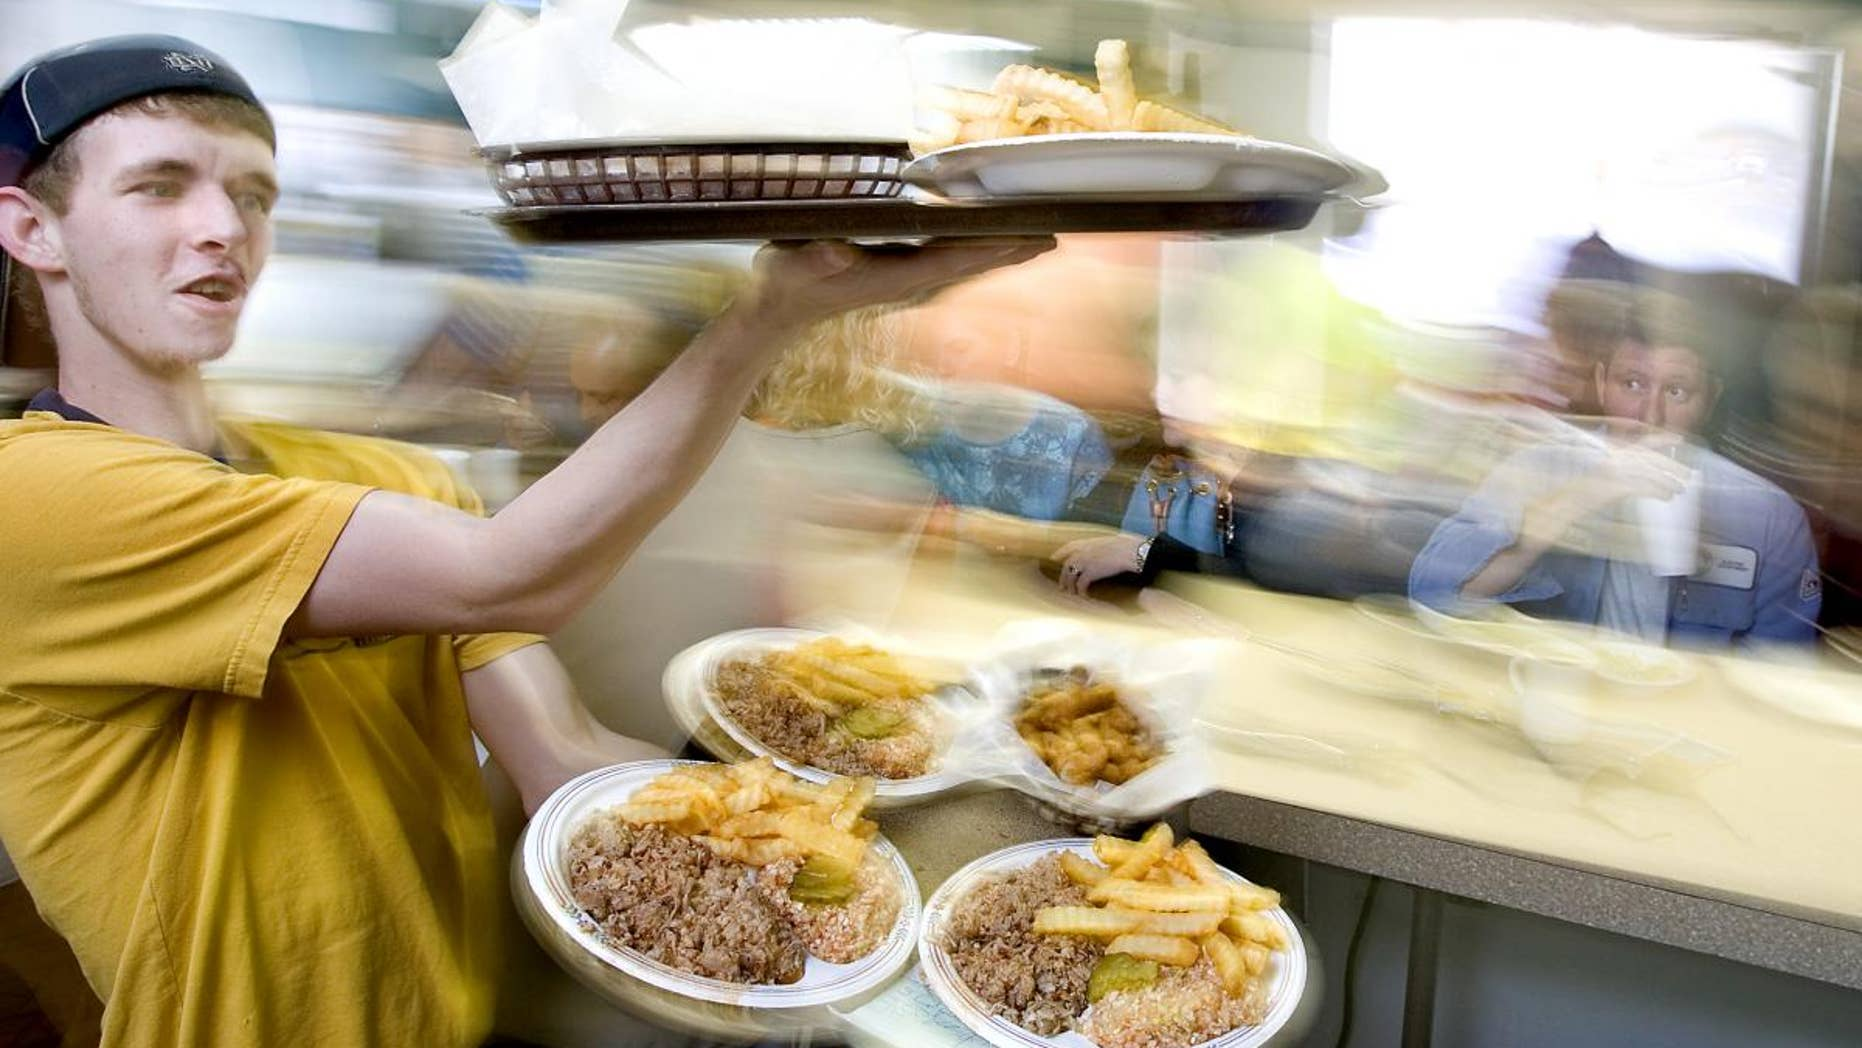 Matthew Hege carries trays of barbecue plates to customers at a barbecue restaurant in Lexington, North Carolina.  (AP File Photo/News-Record, H. Scott Hoffmann)